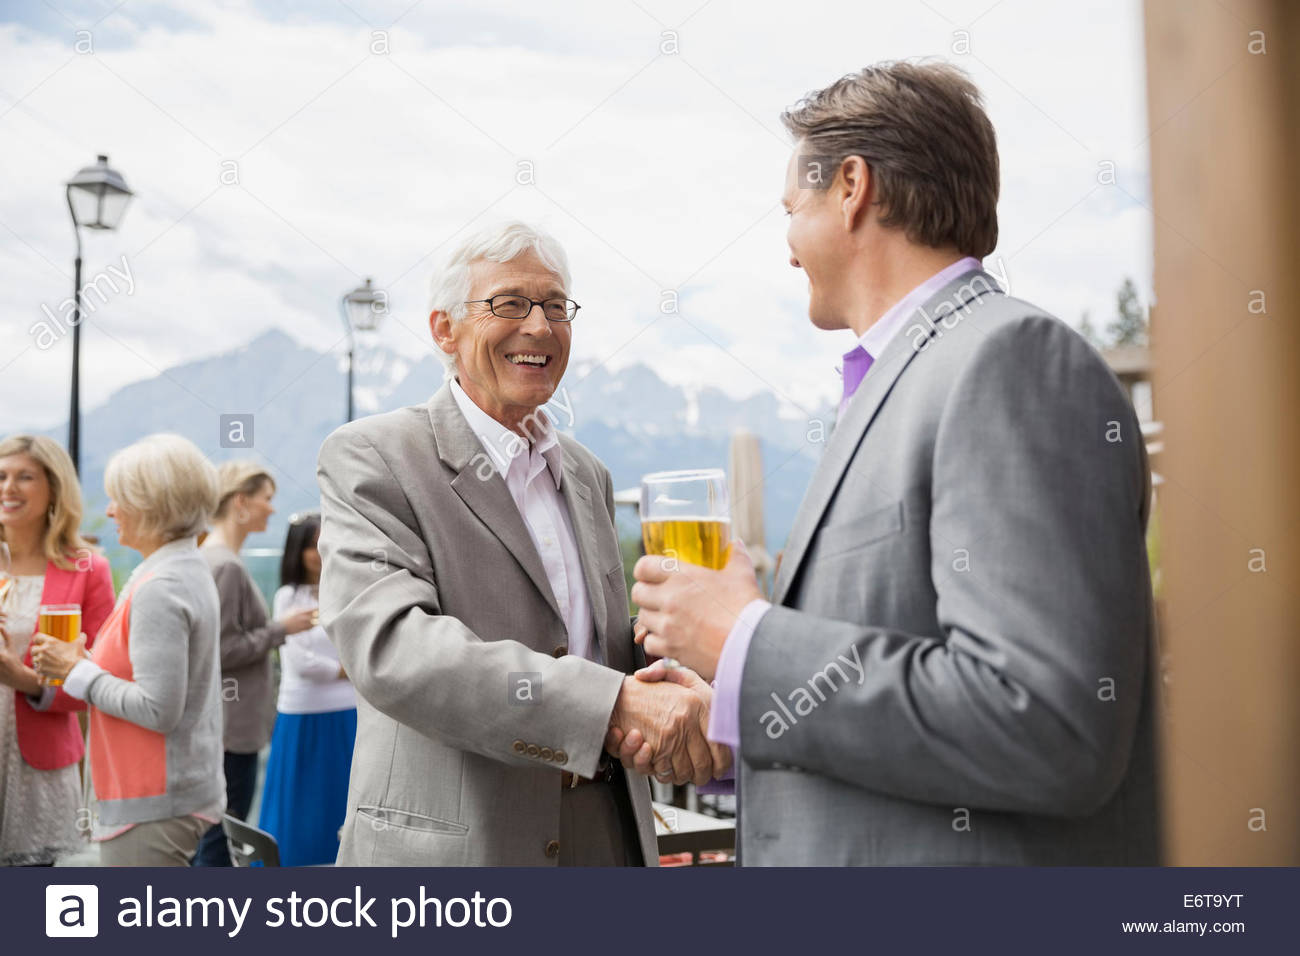 Businessmen shaking hands at networking event - Stock Image